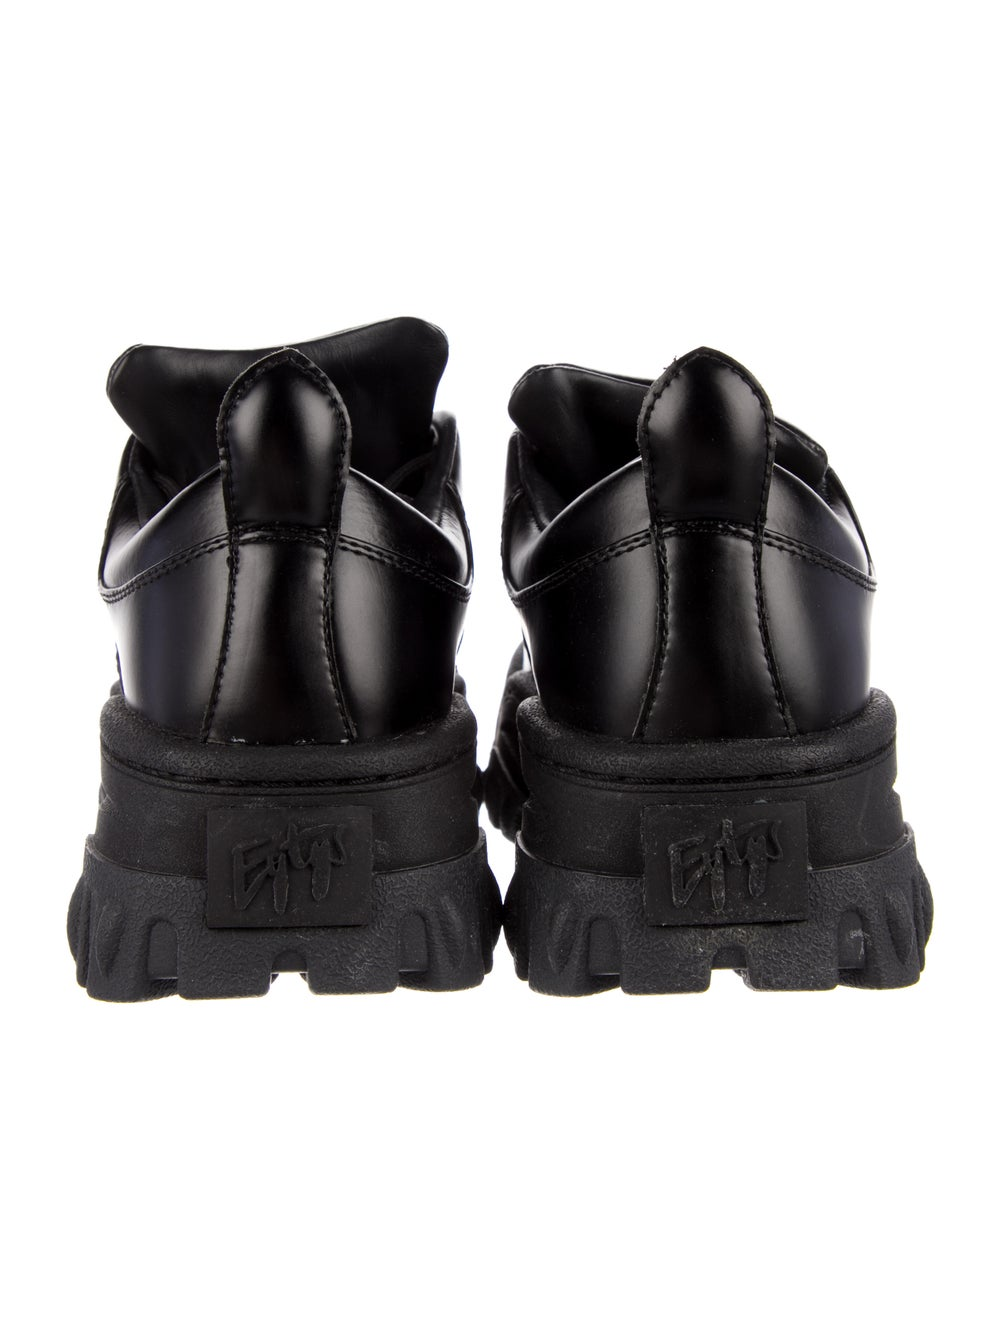 Eytys Leather Chunky Sneakers Black - image 4